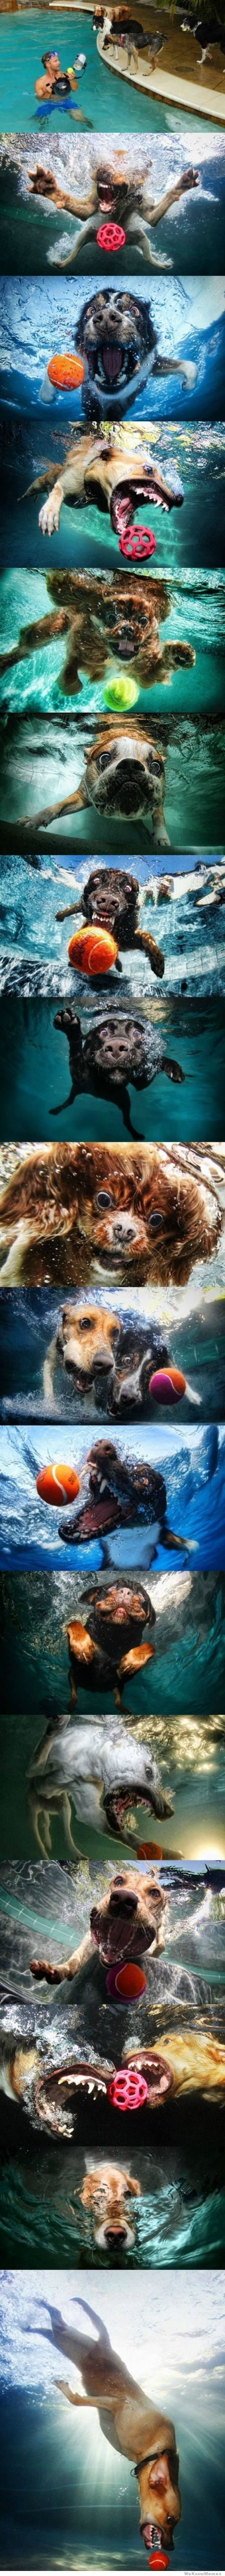 Seth Casteel, the author of Underwater Dogs - helping rescue pets!